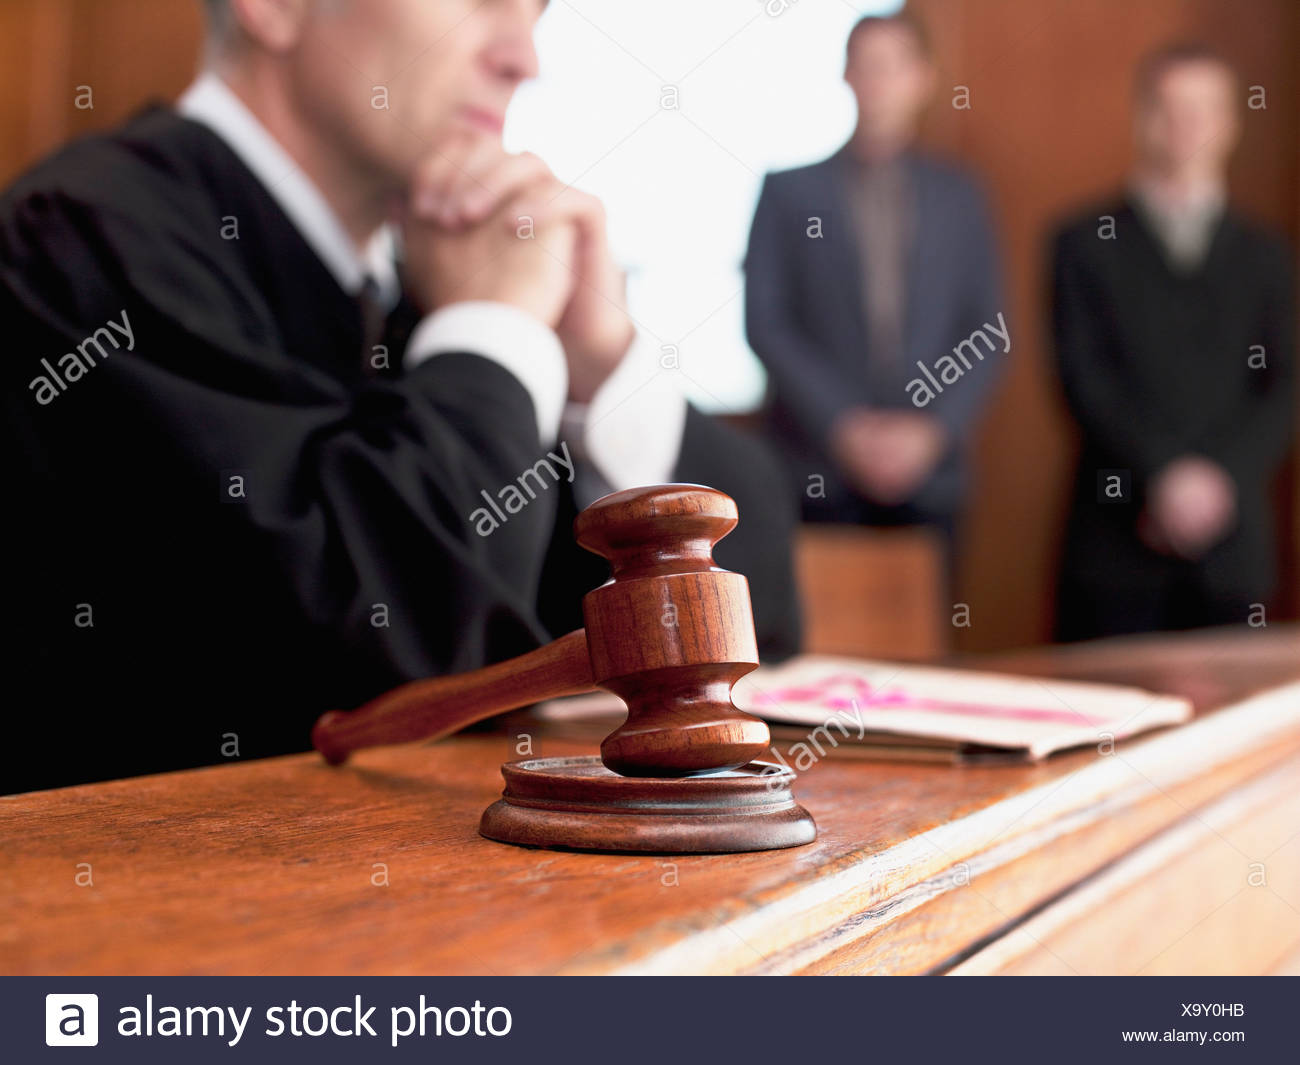 Judge and gavel in courtroom - Stock Image